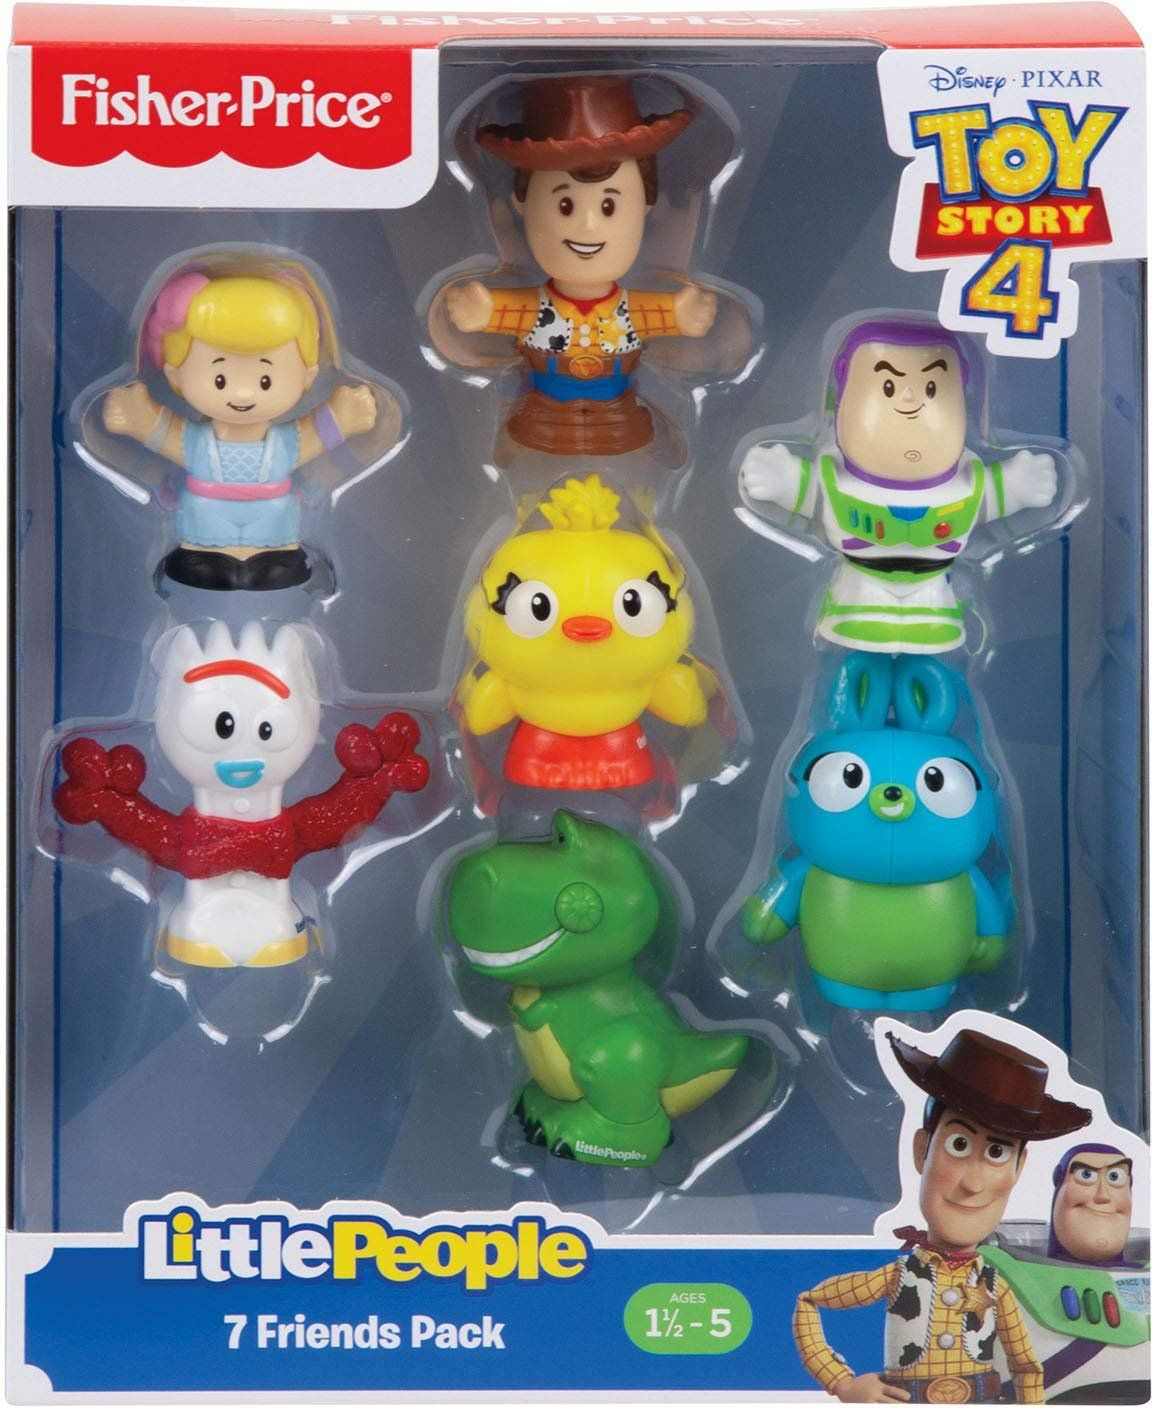 Fisher Price Disney Toy Story 4 Little People set